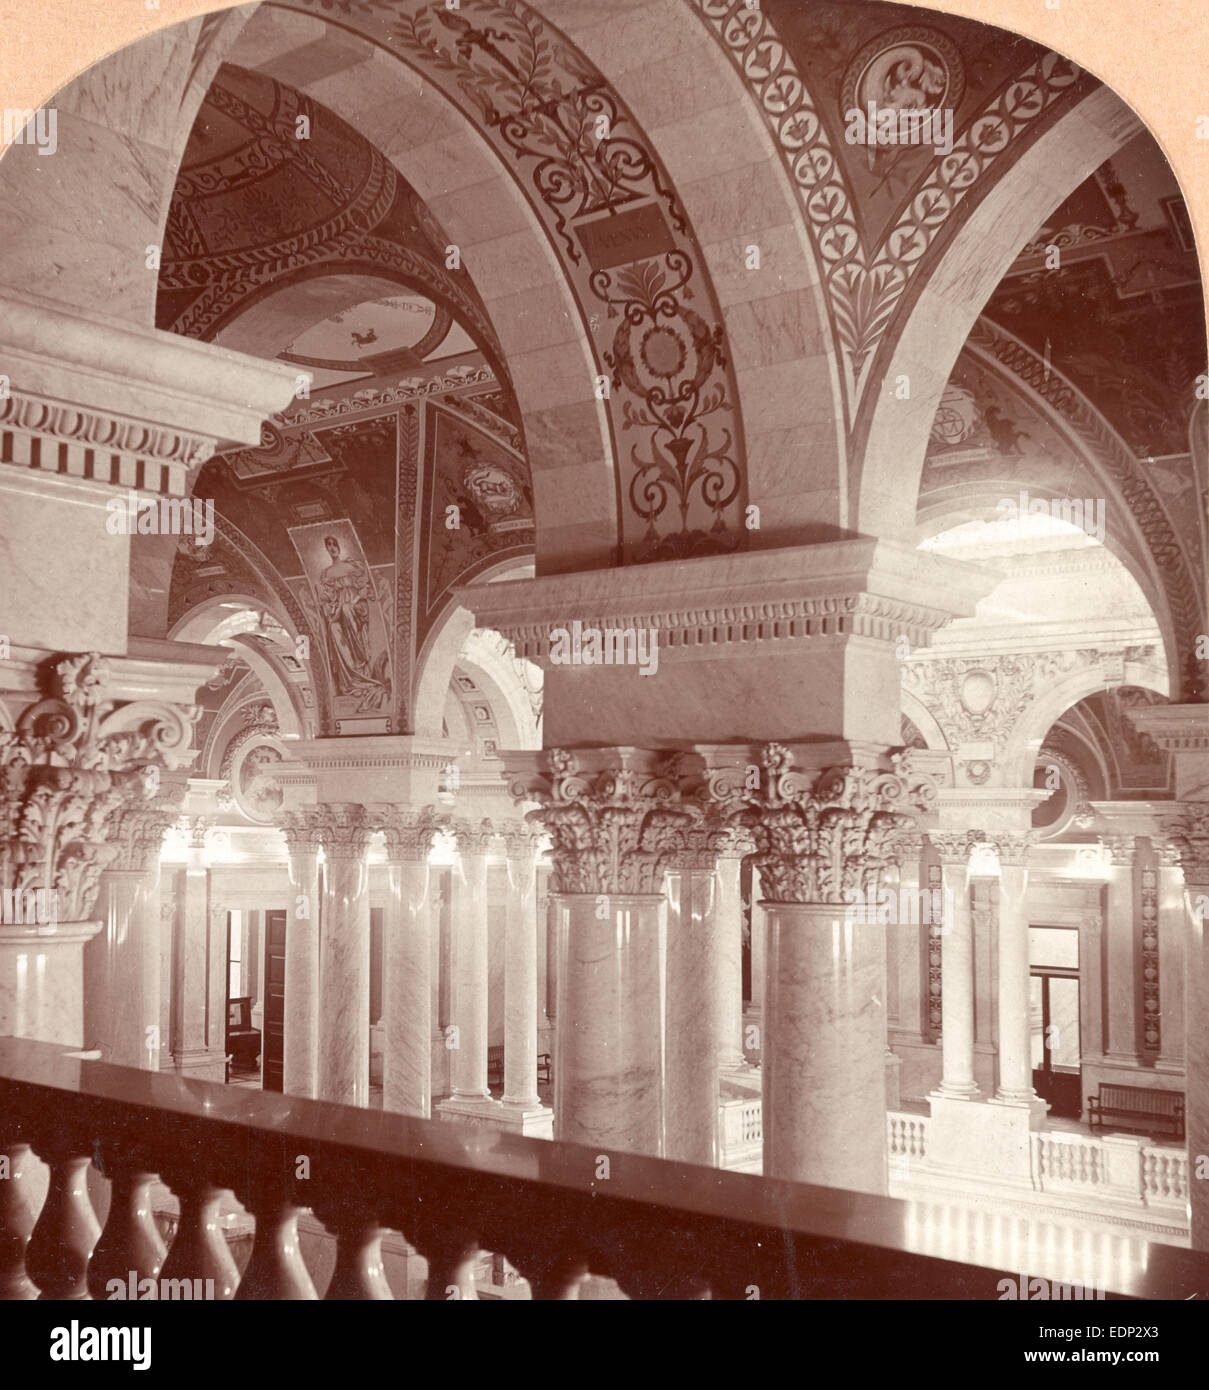 A poem in marble columns and frescoed walls, Congressional Library, Washington, DC, US, USA, America, Vintage photography - Stock Image